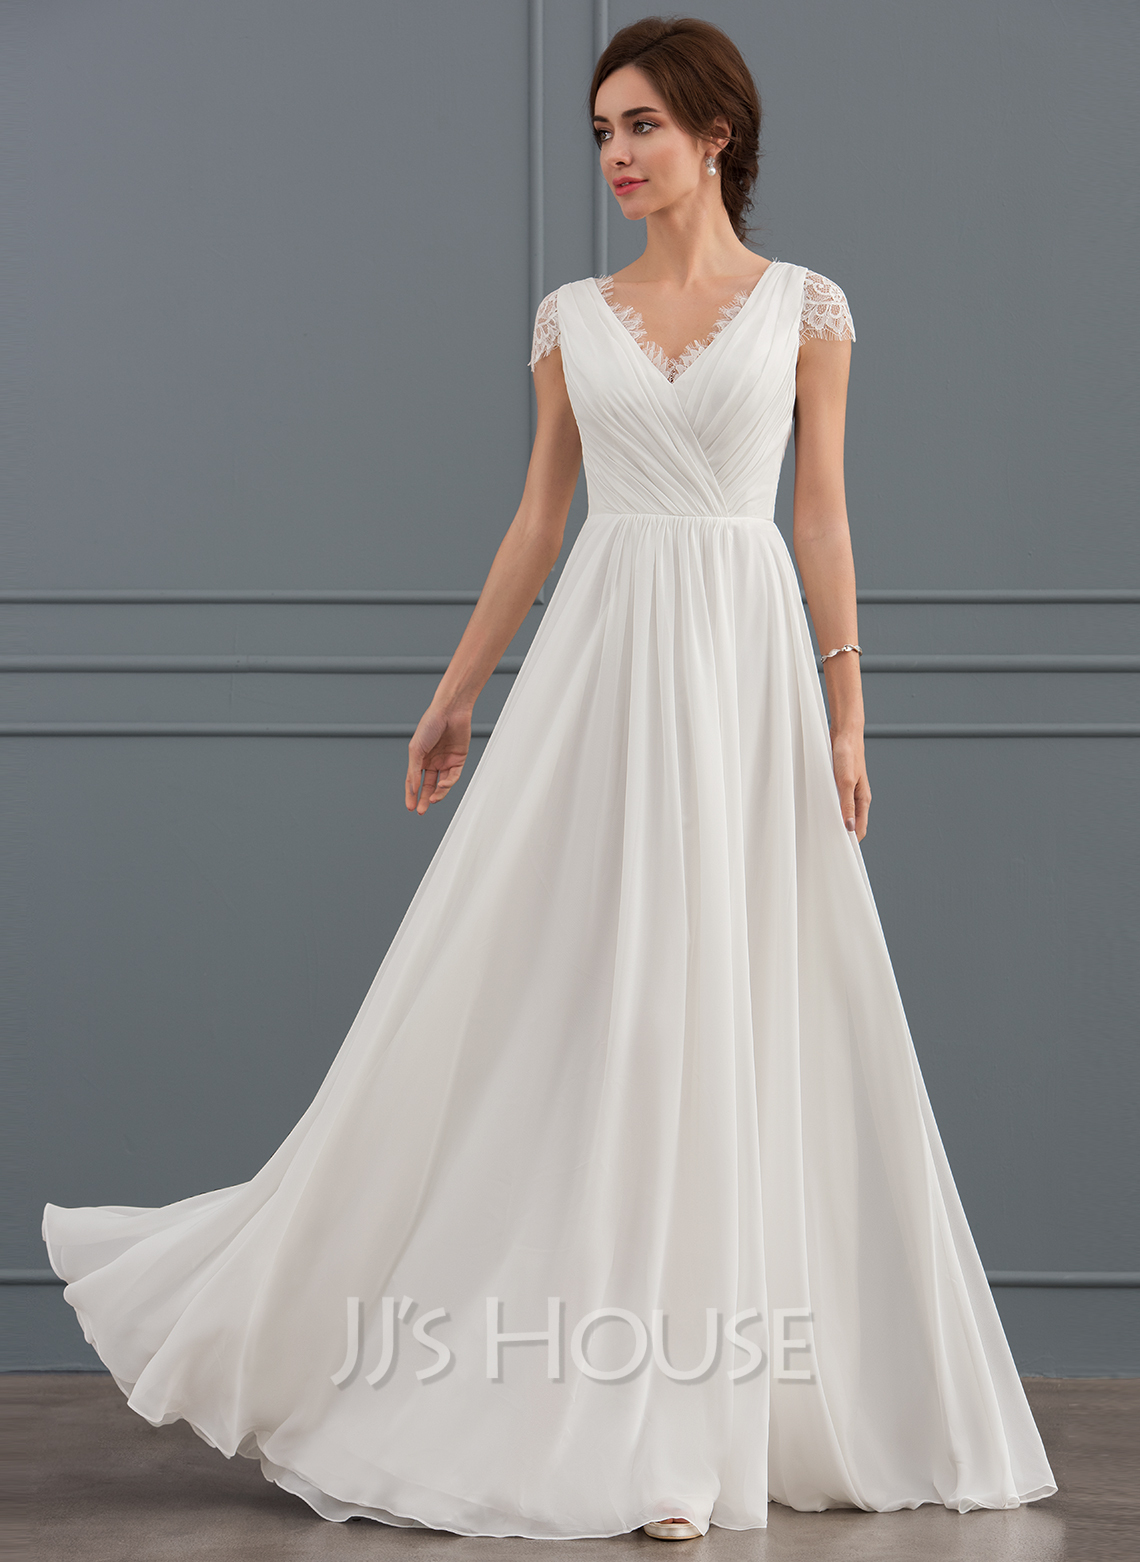 Us 15100 A Line V Neck Floor Length Chiffon Lace Wedding Dress With Ruffle Jjs House